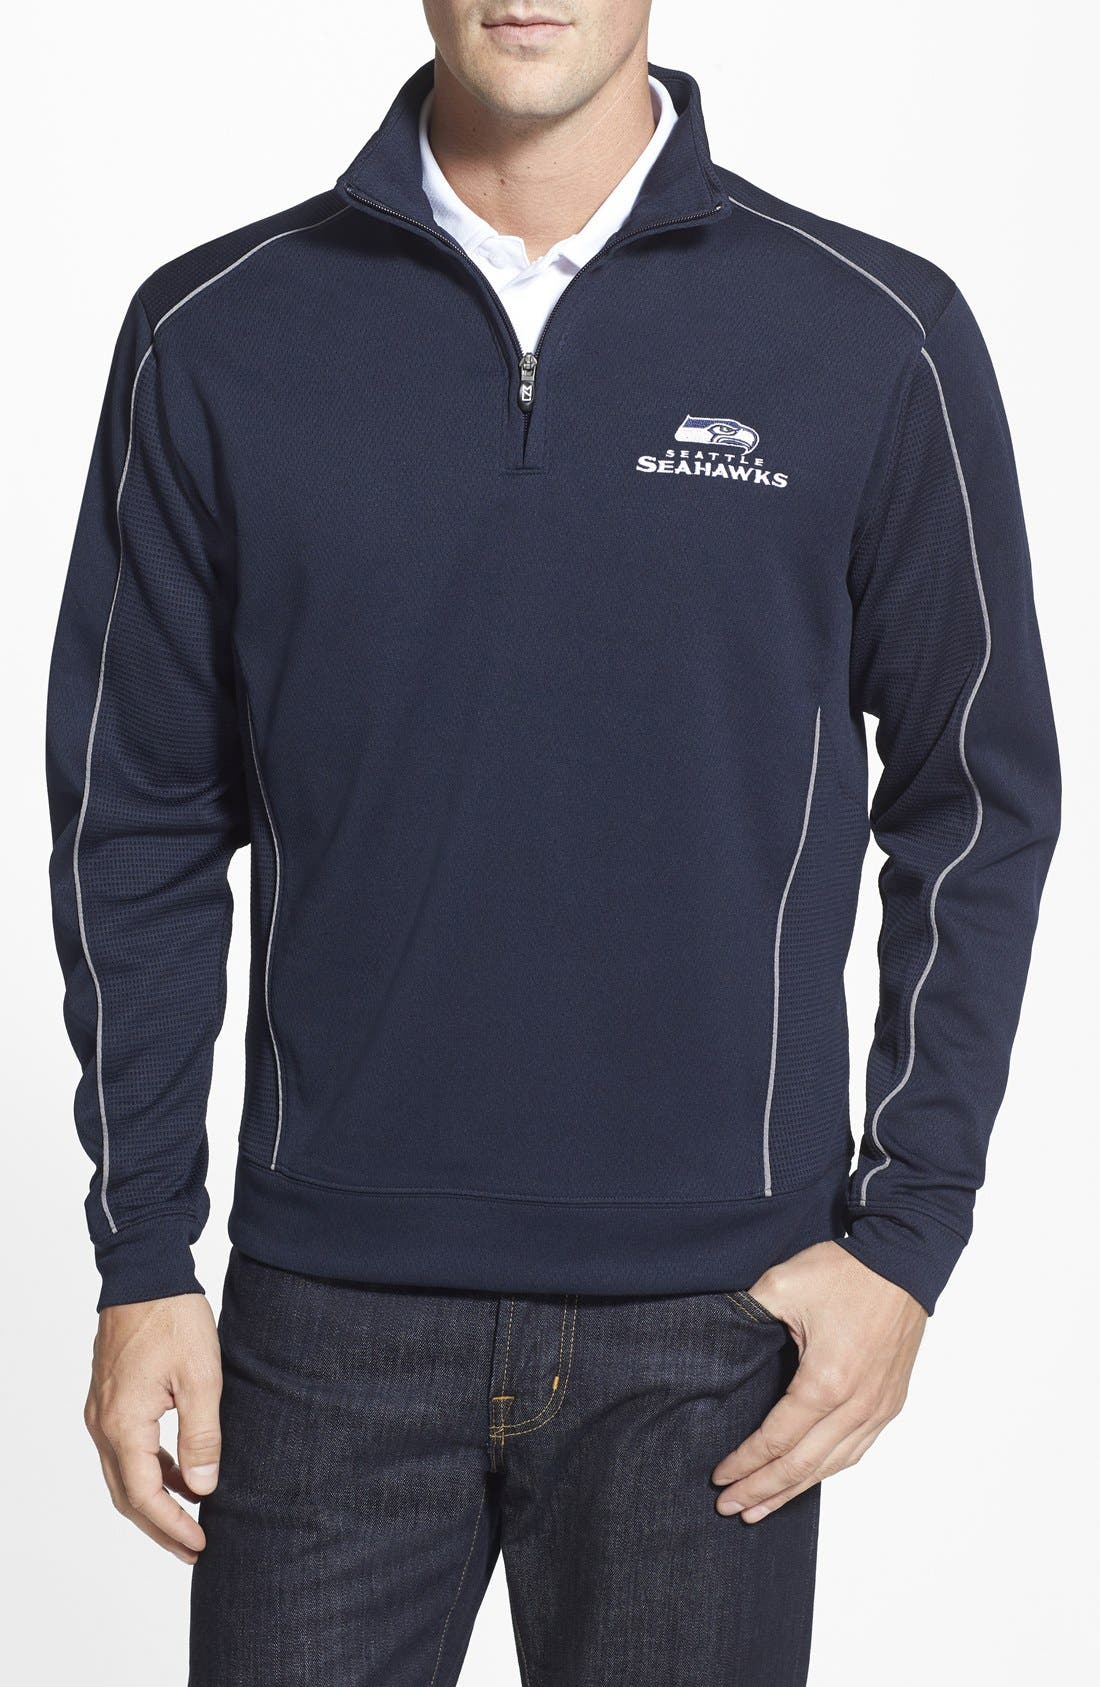 Seattle Seahawks - Edge DryTec Moisture Wicking Half Zip Pullover,                         Main,                         color, Navy Blue